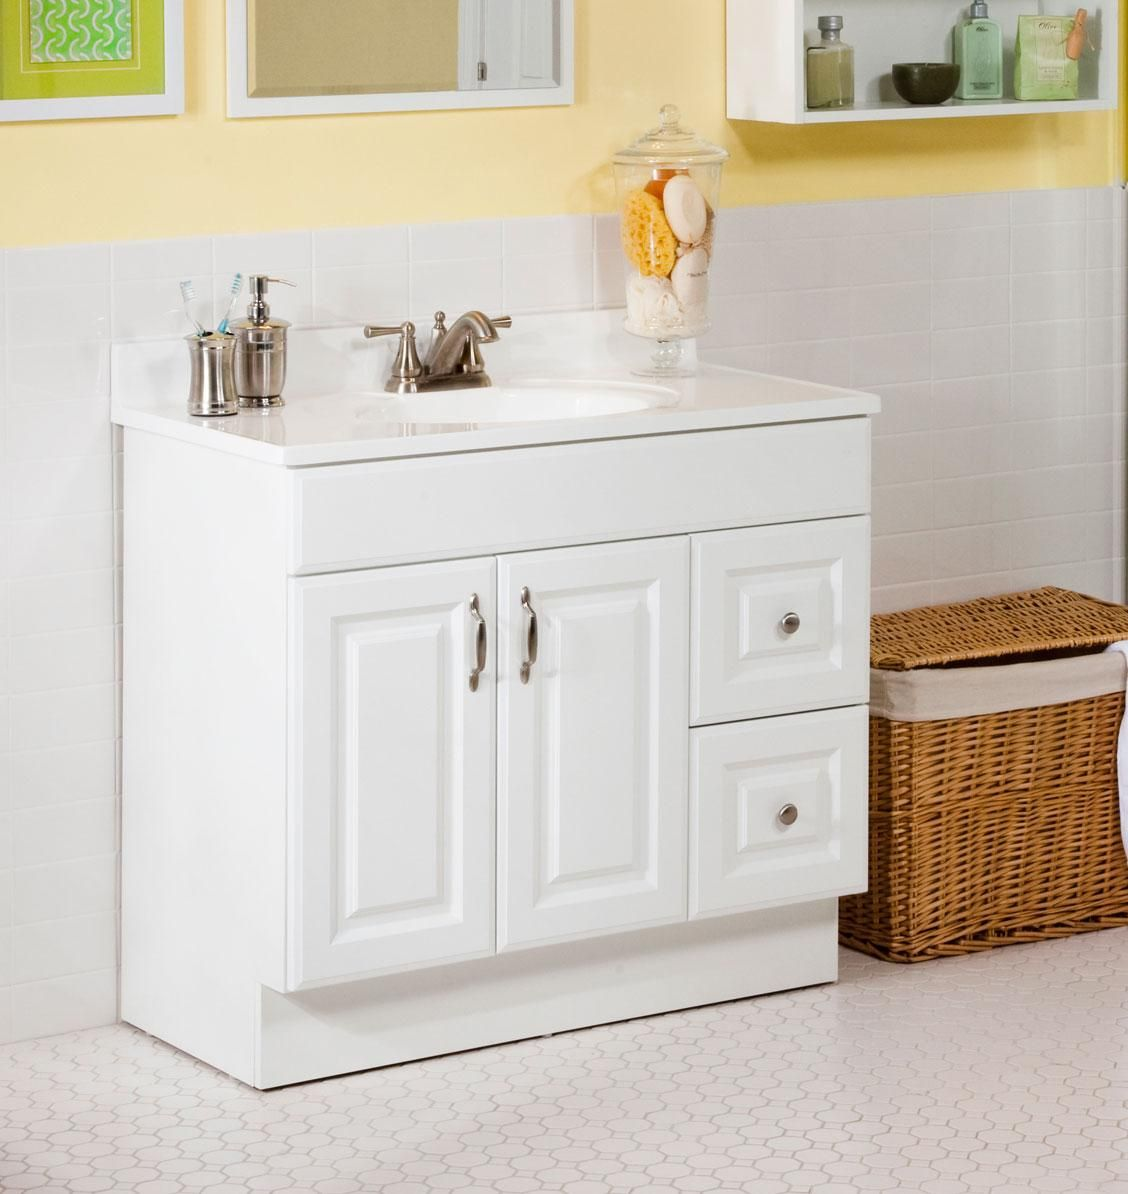 Picture Gallery For Website Latest Posts Under Bathroom cabinets